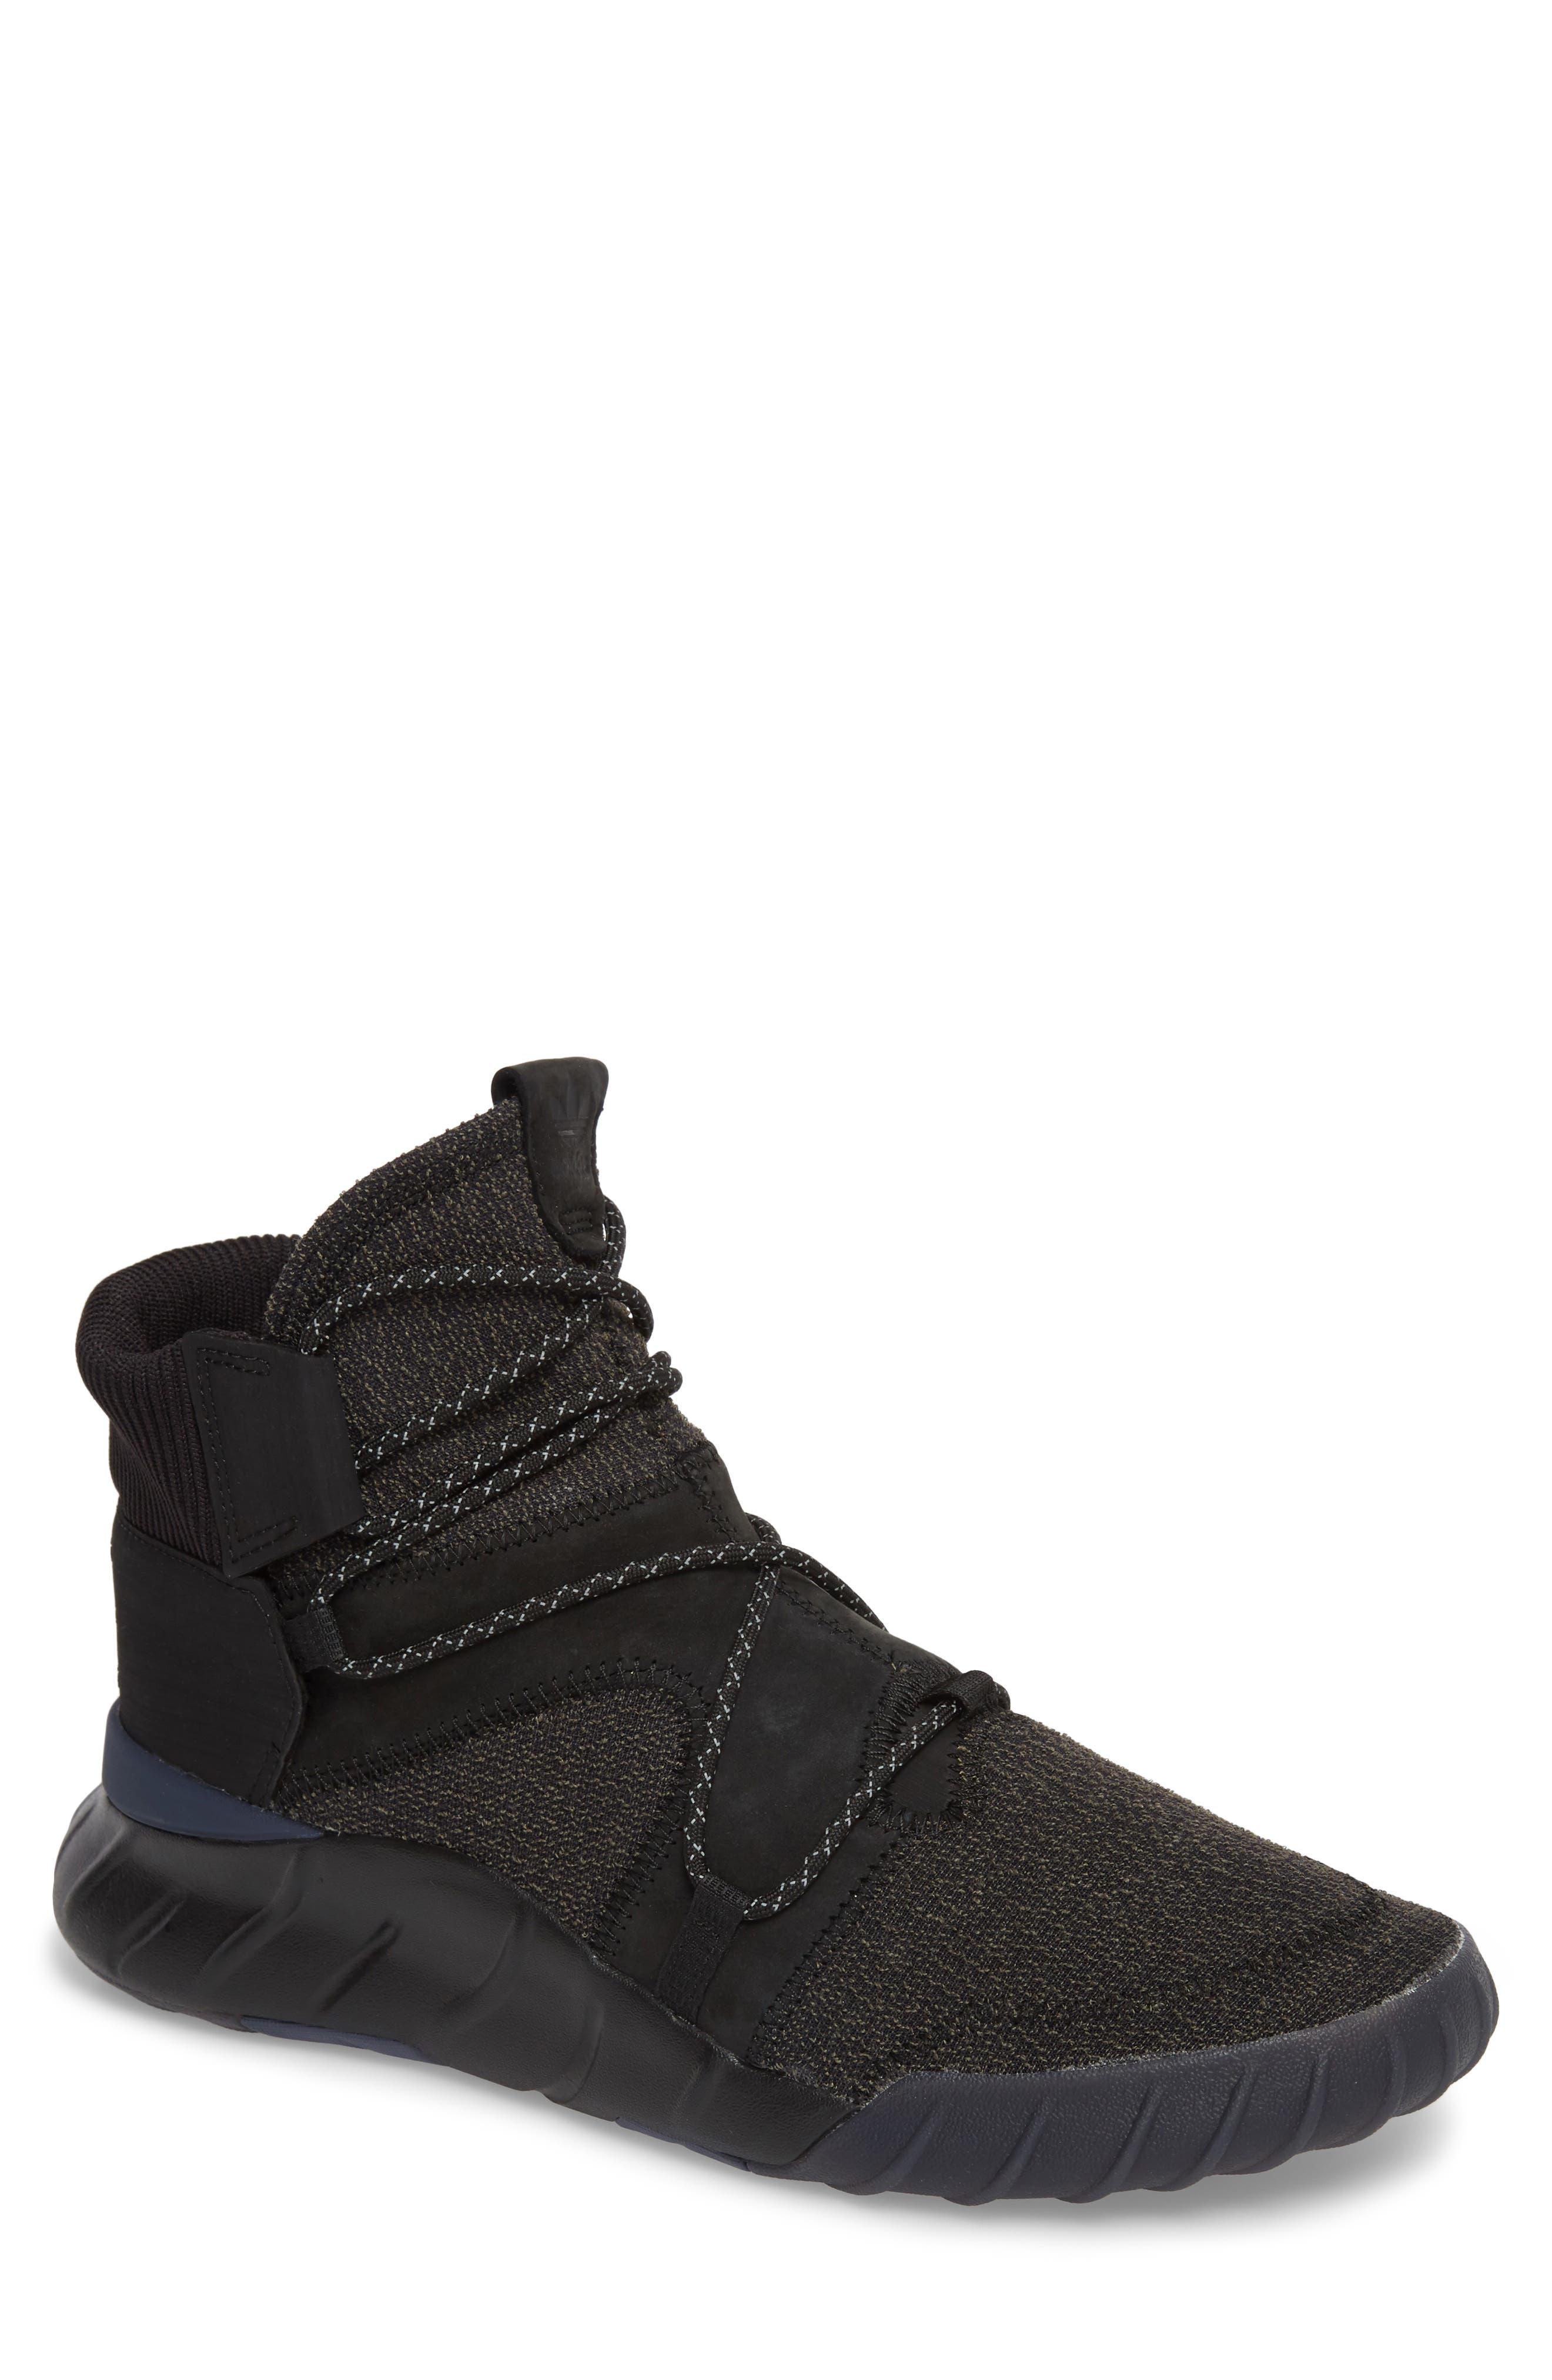 Tubular X 2.0 High Top Sneaker,                             Main thumbnail 1, color,